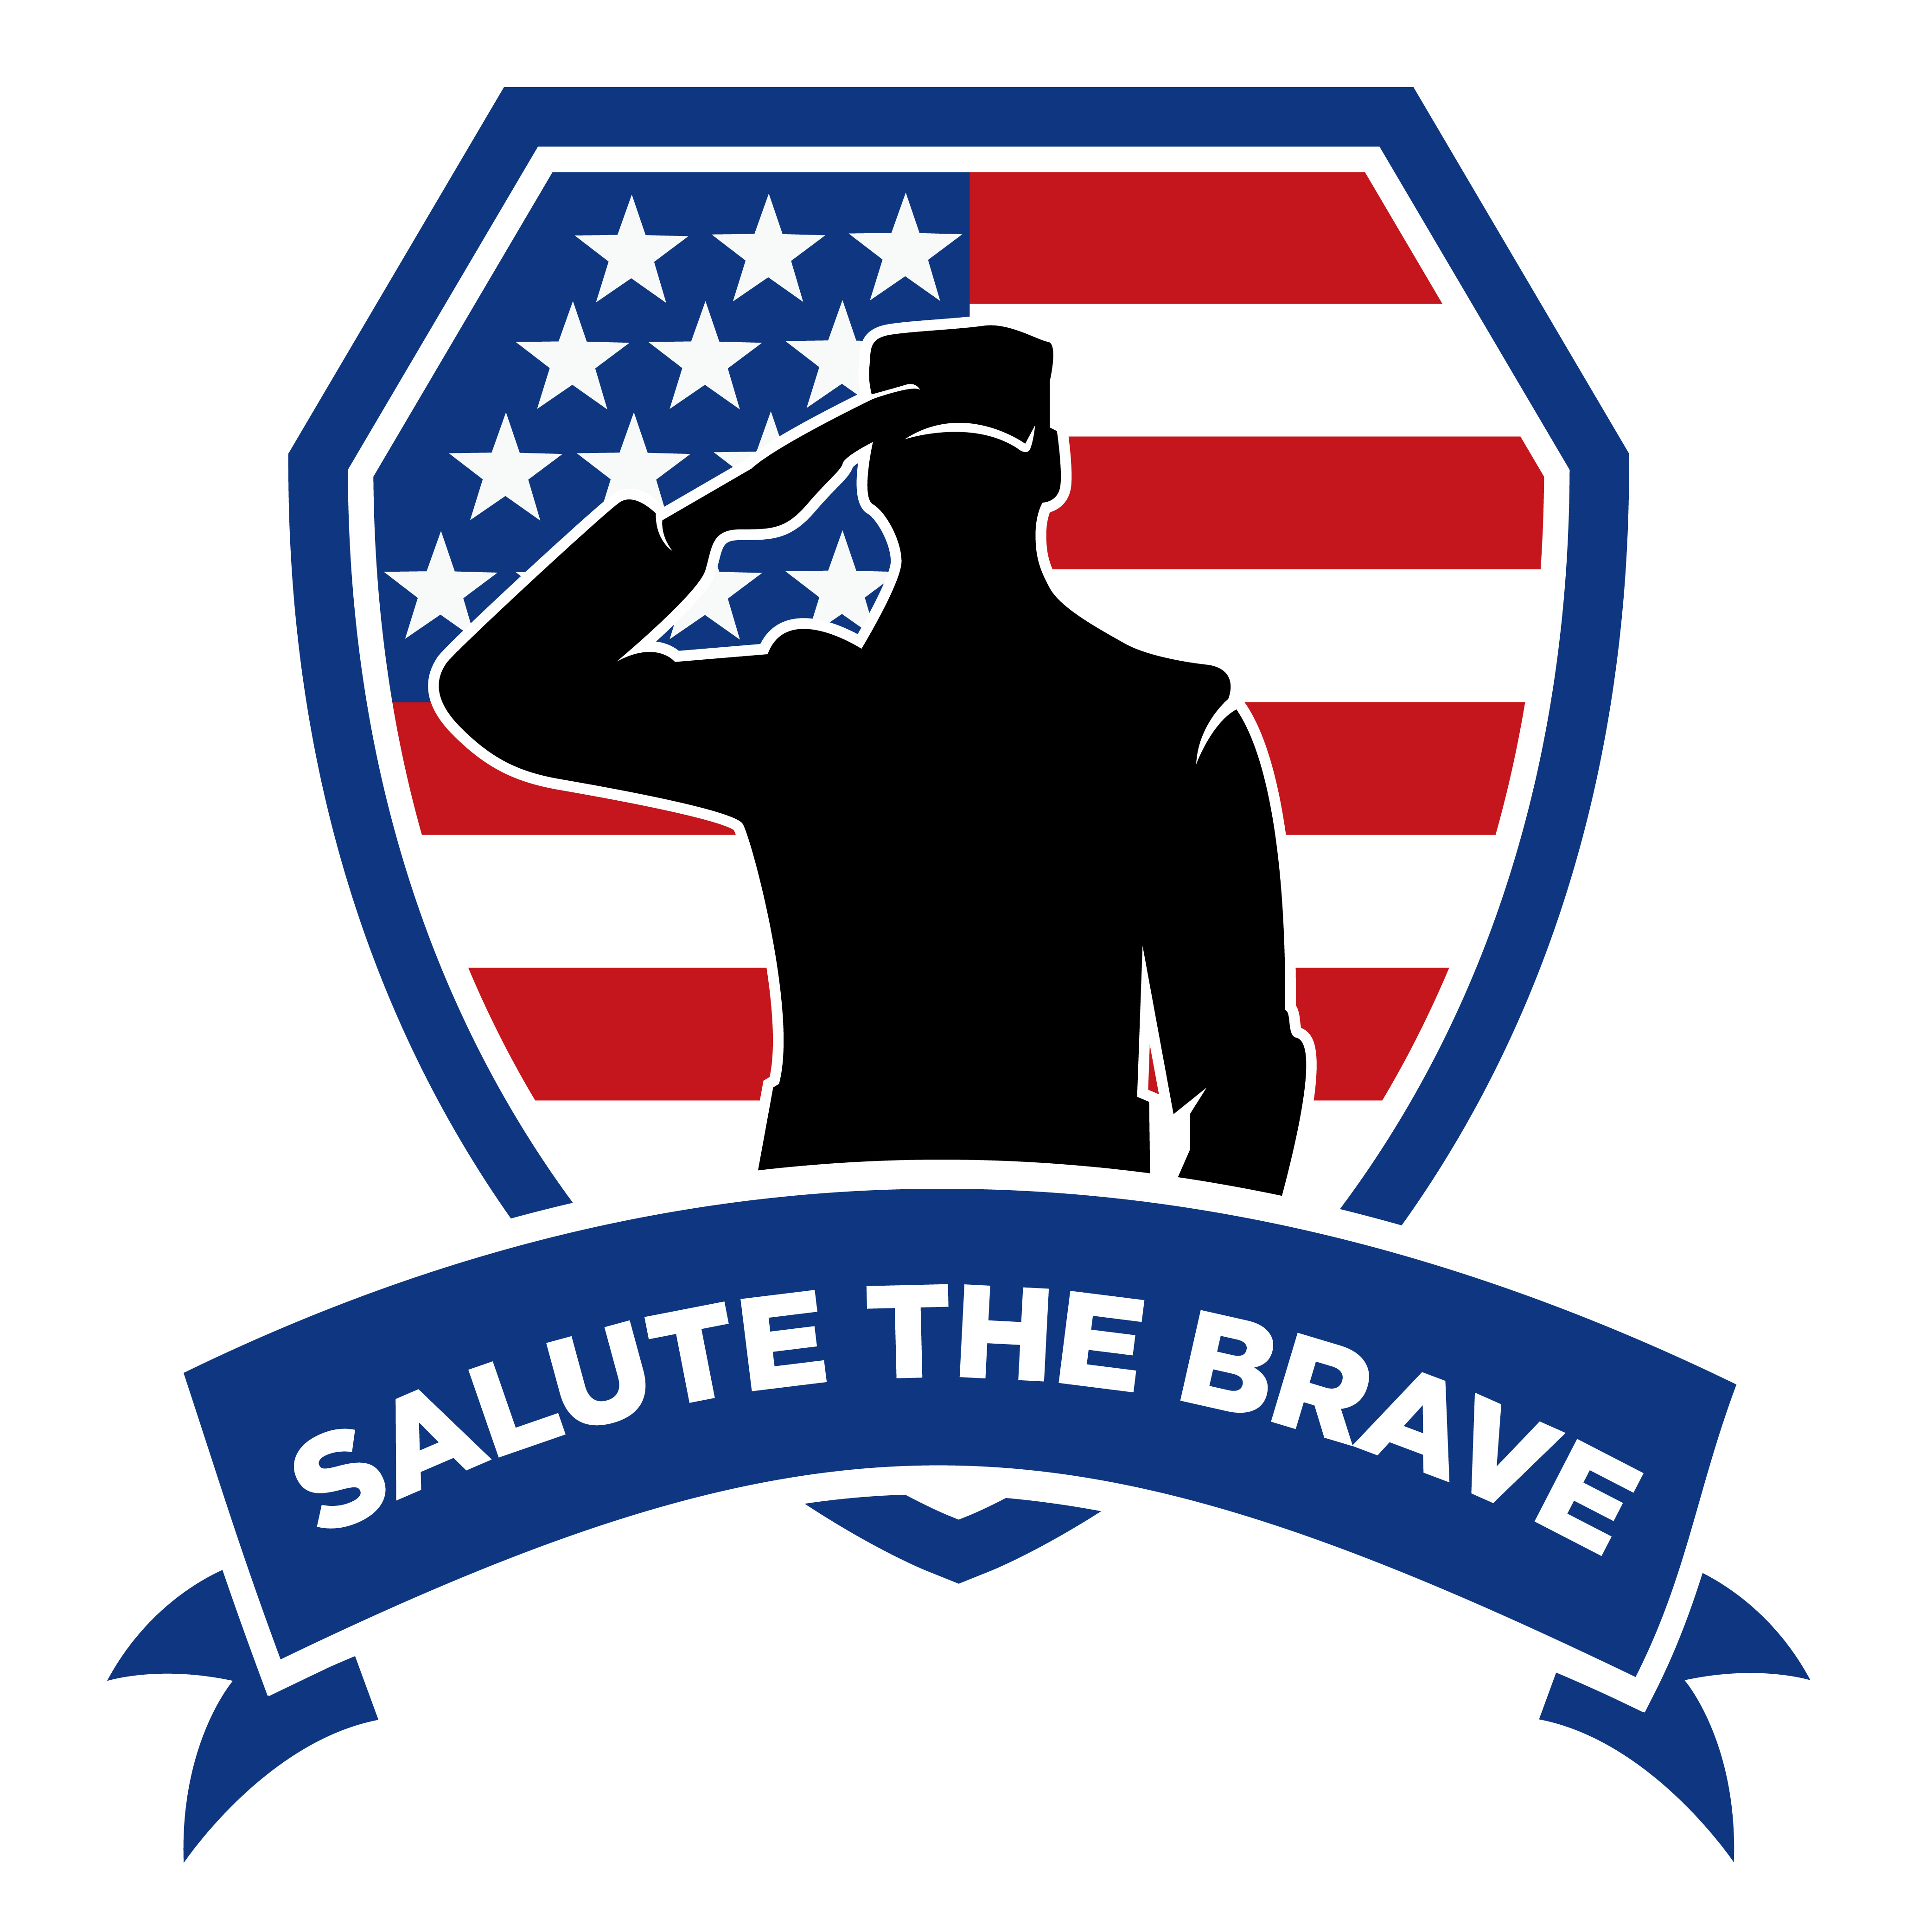 Soldiers clipart salute logo Salute From The Honors Help